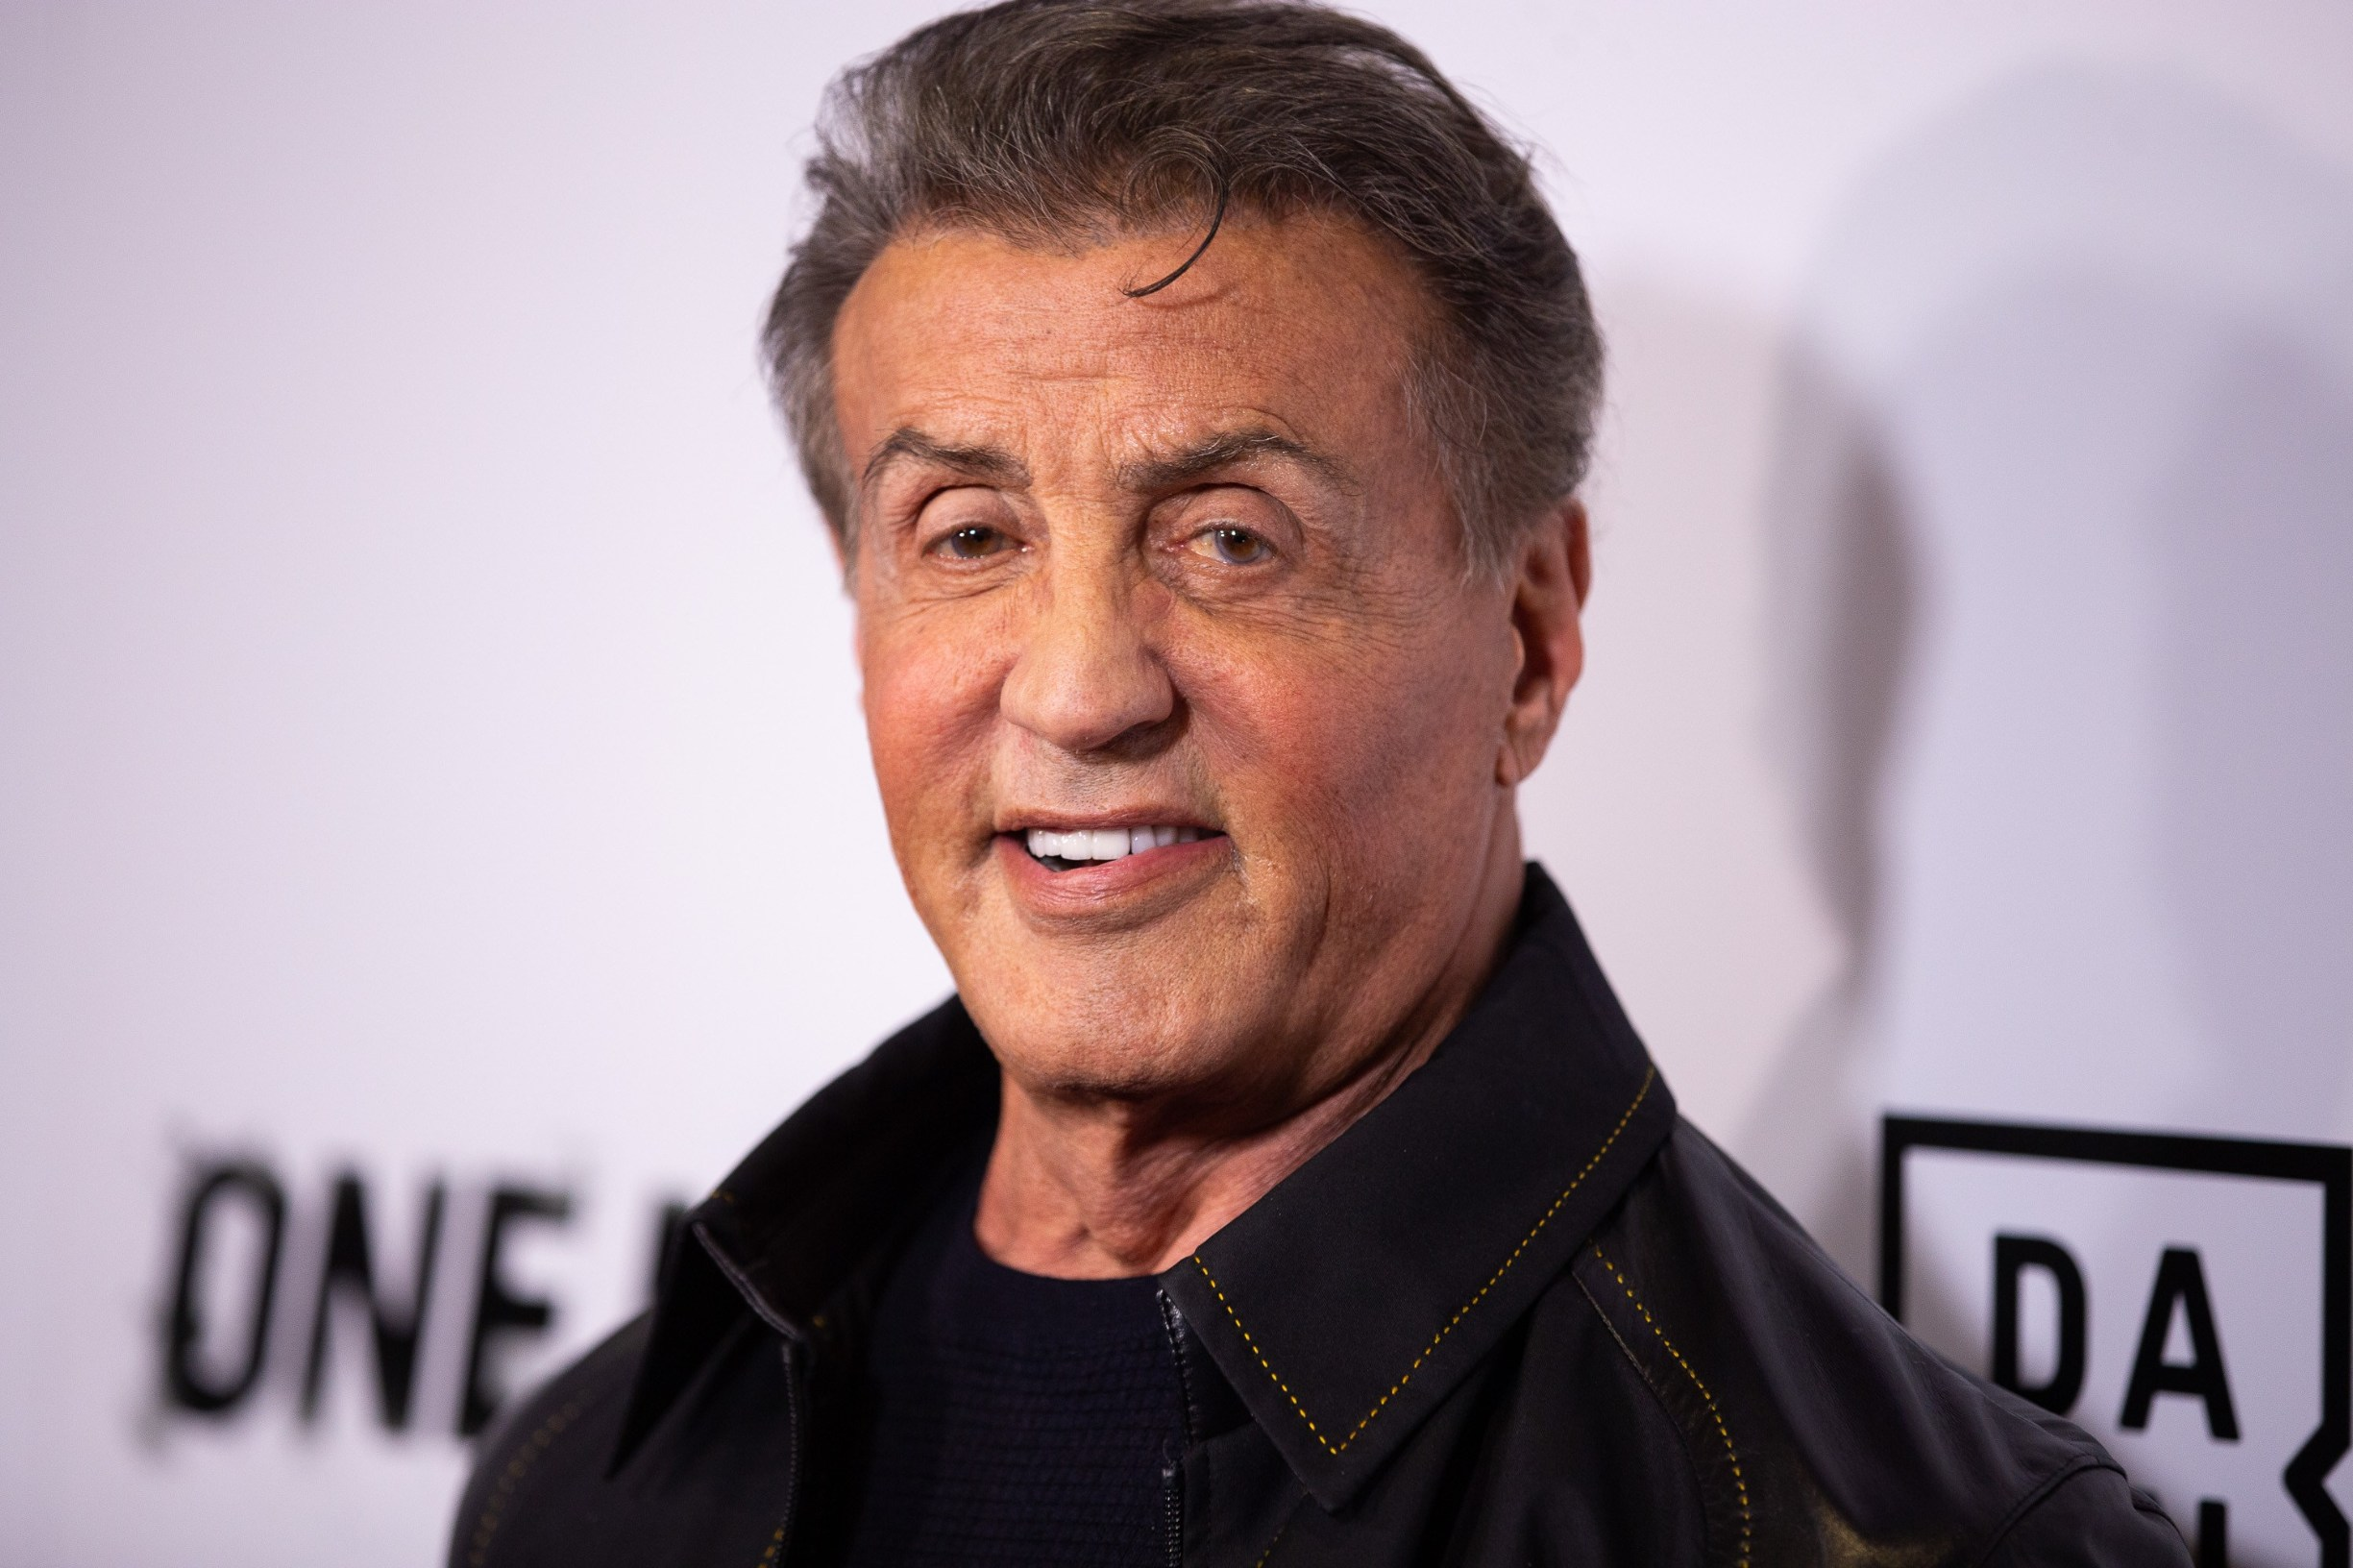 Sylvester Stallone at arrivals for JOSHUA VS. RUIZ Premiere by DAZN Originals, Writers Guild Theater, Beverly Hills, CA November 21, 2019., Image: 484240884, License: Rights-managed, Restrictions: For usage credit please use; Adrian Cabrero/Everett Collection, Model Release: no, Credit line: Adrian Cabrero / Everett / Profimedia